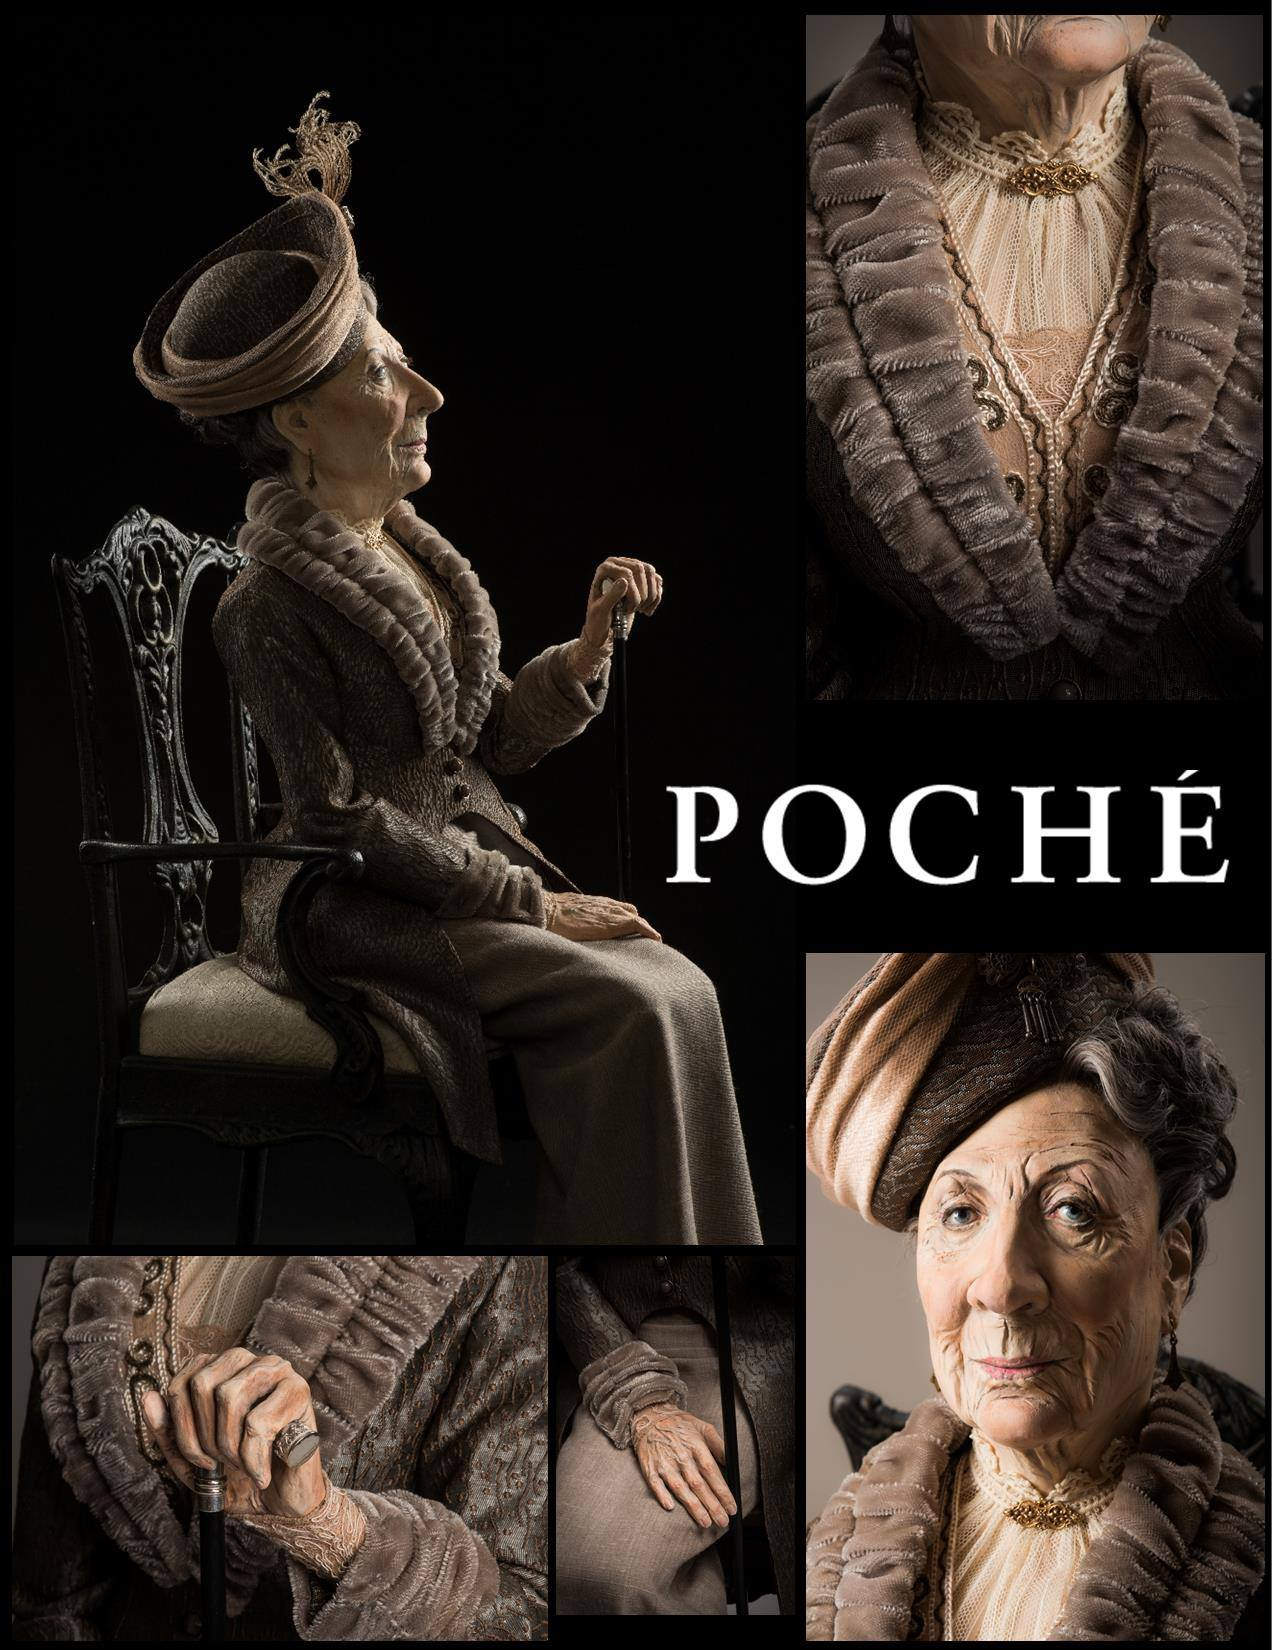 Dustin Poche – The Dowager Countess doll sculpture